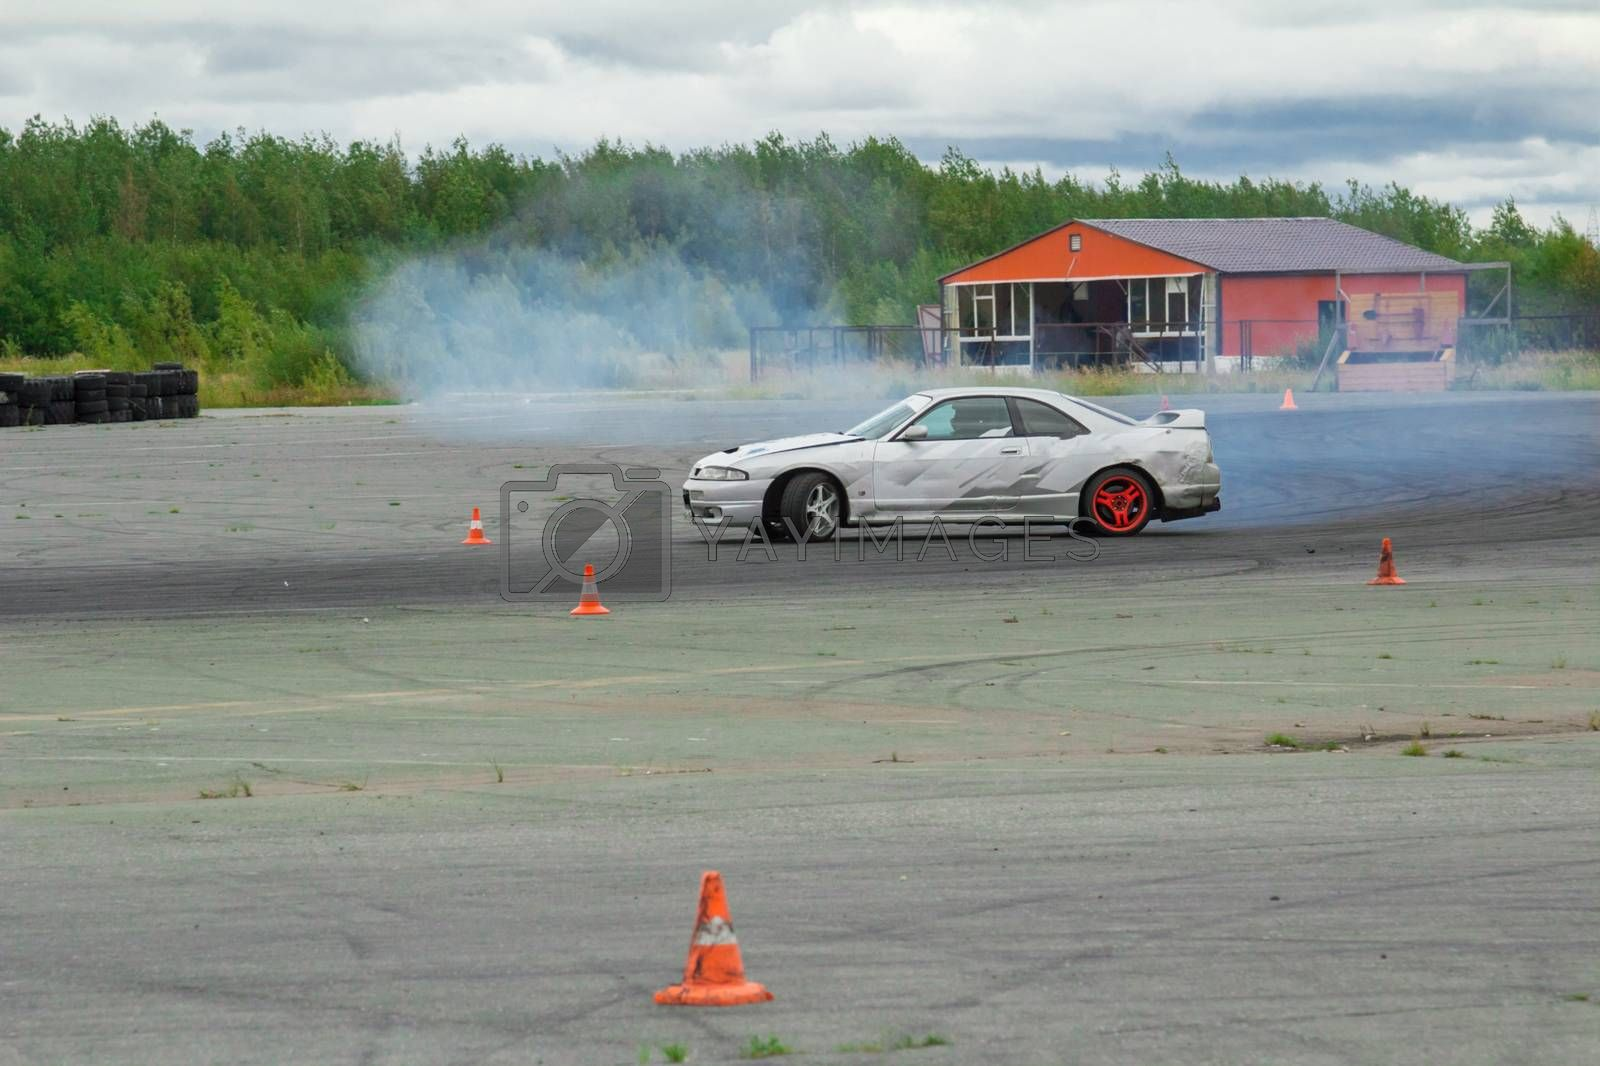 Cornering technique with the use of a controlled drift at the maximum speed